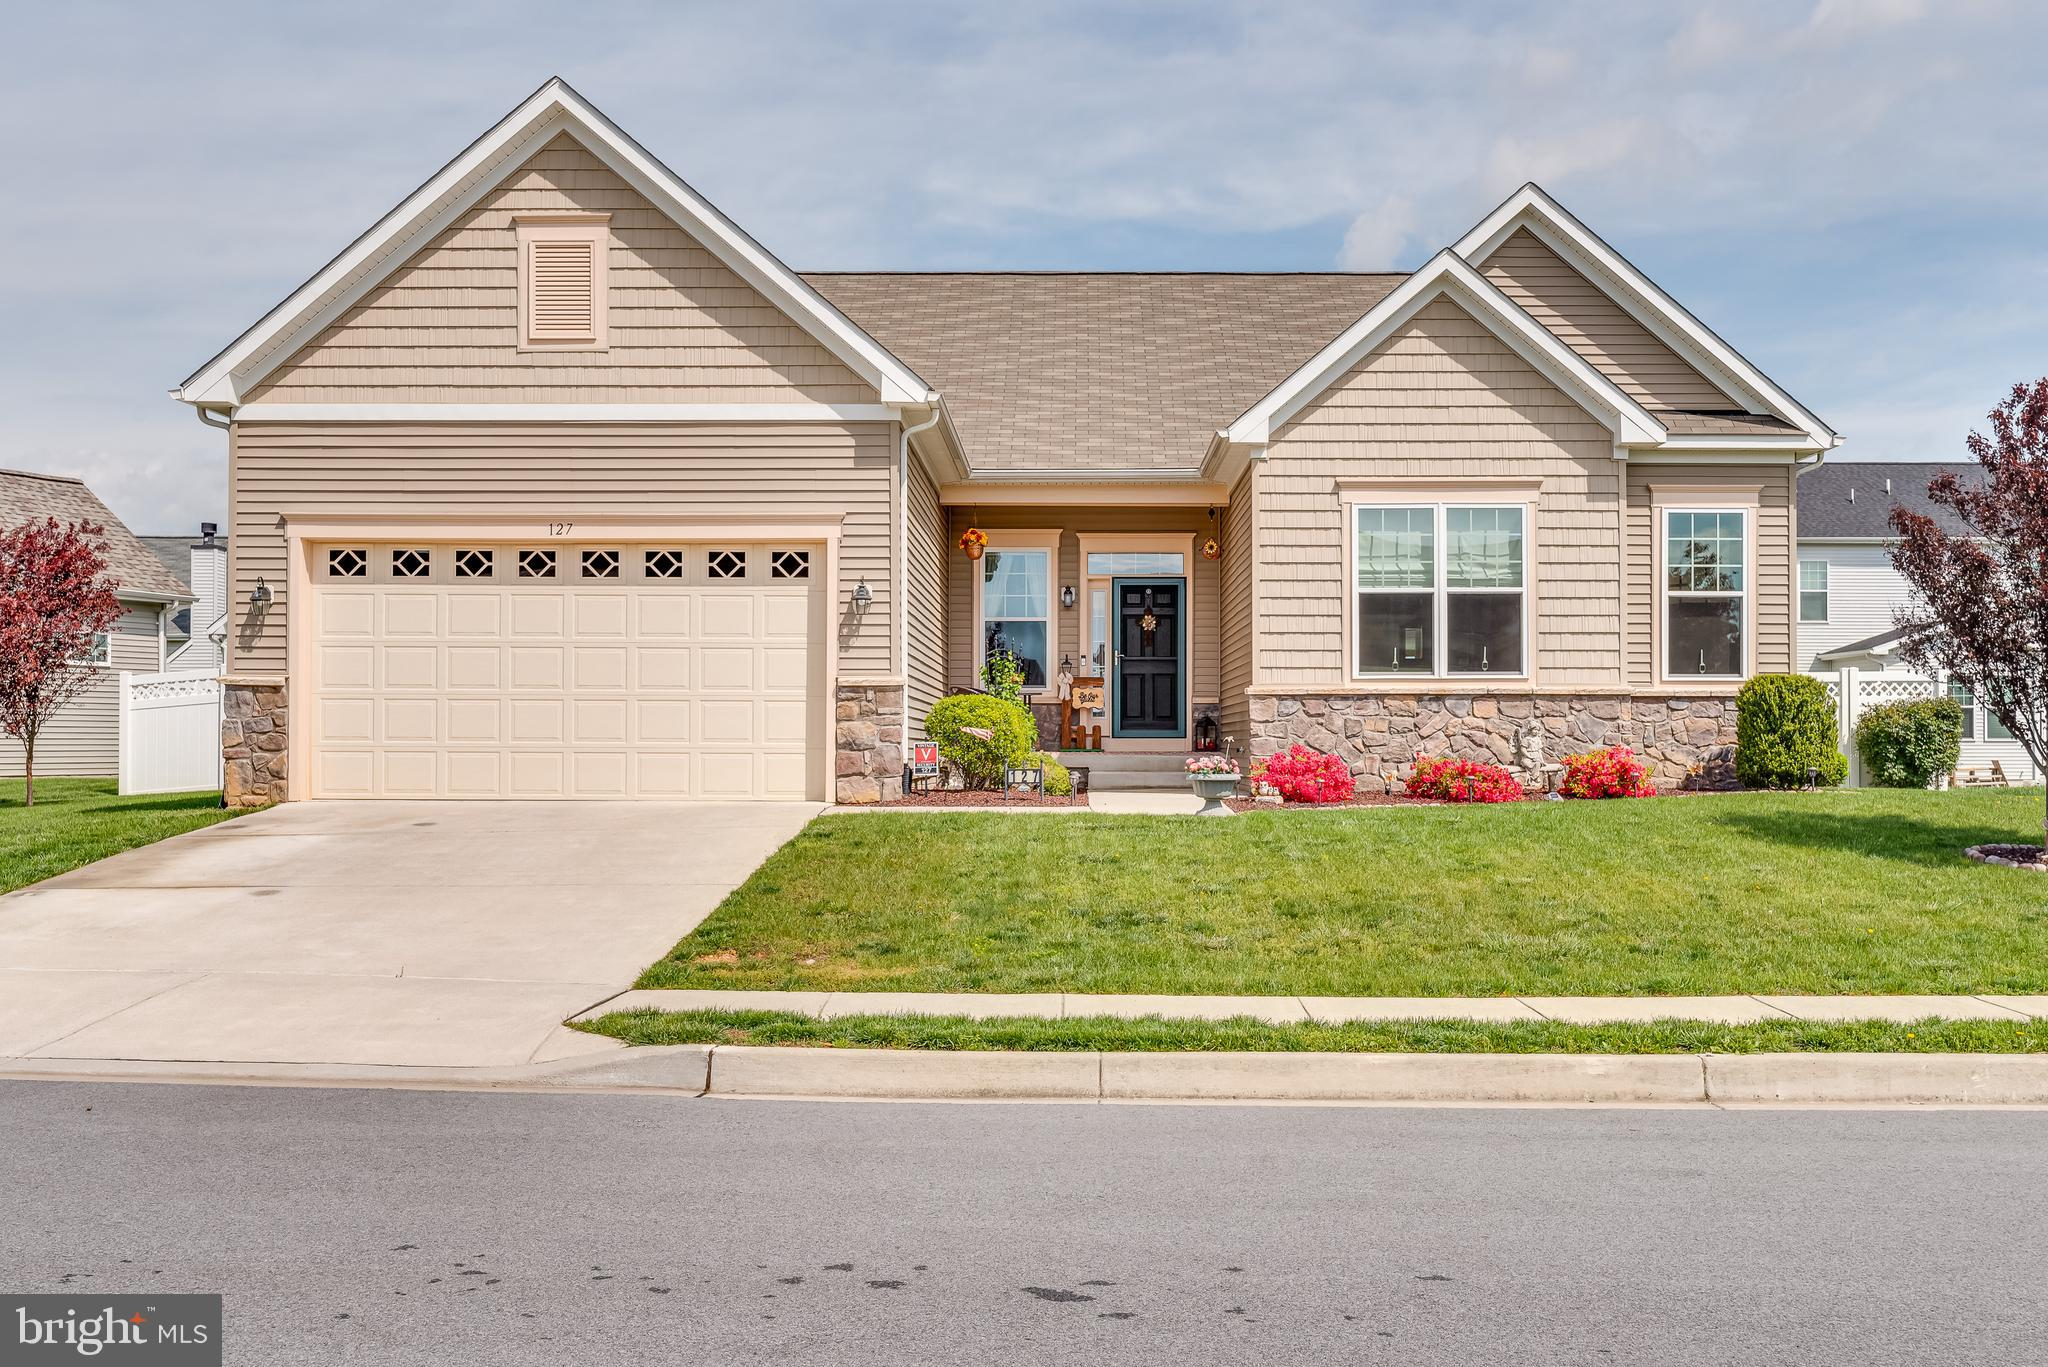 This 4 bedroom 3 full bath rancher has been impeccably maintained. The home has tons of curb appeal